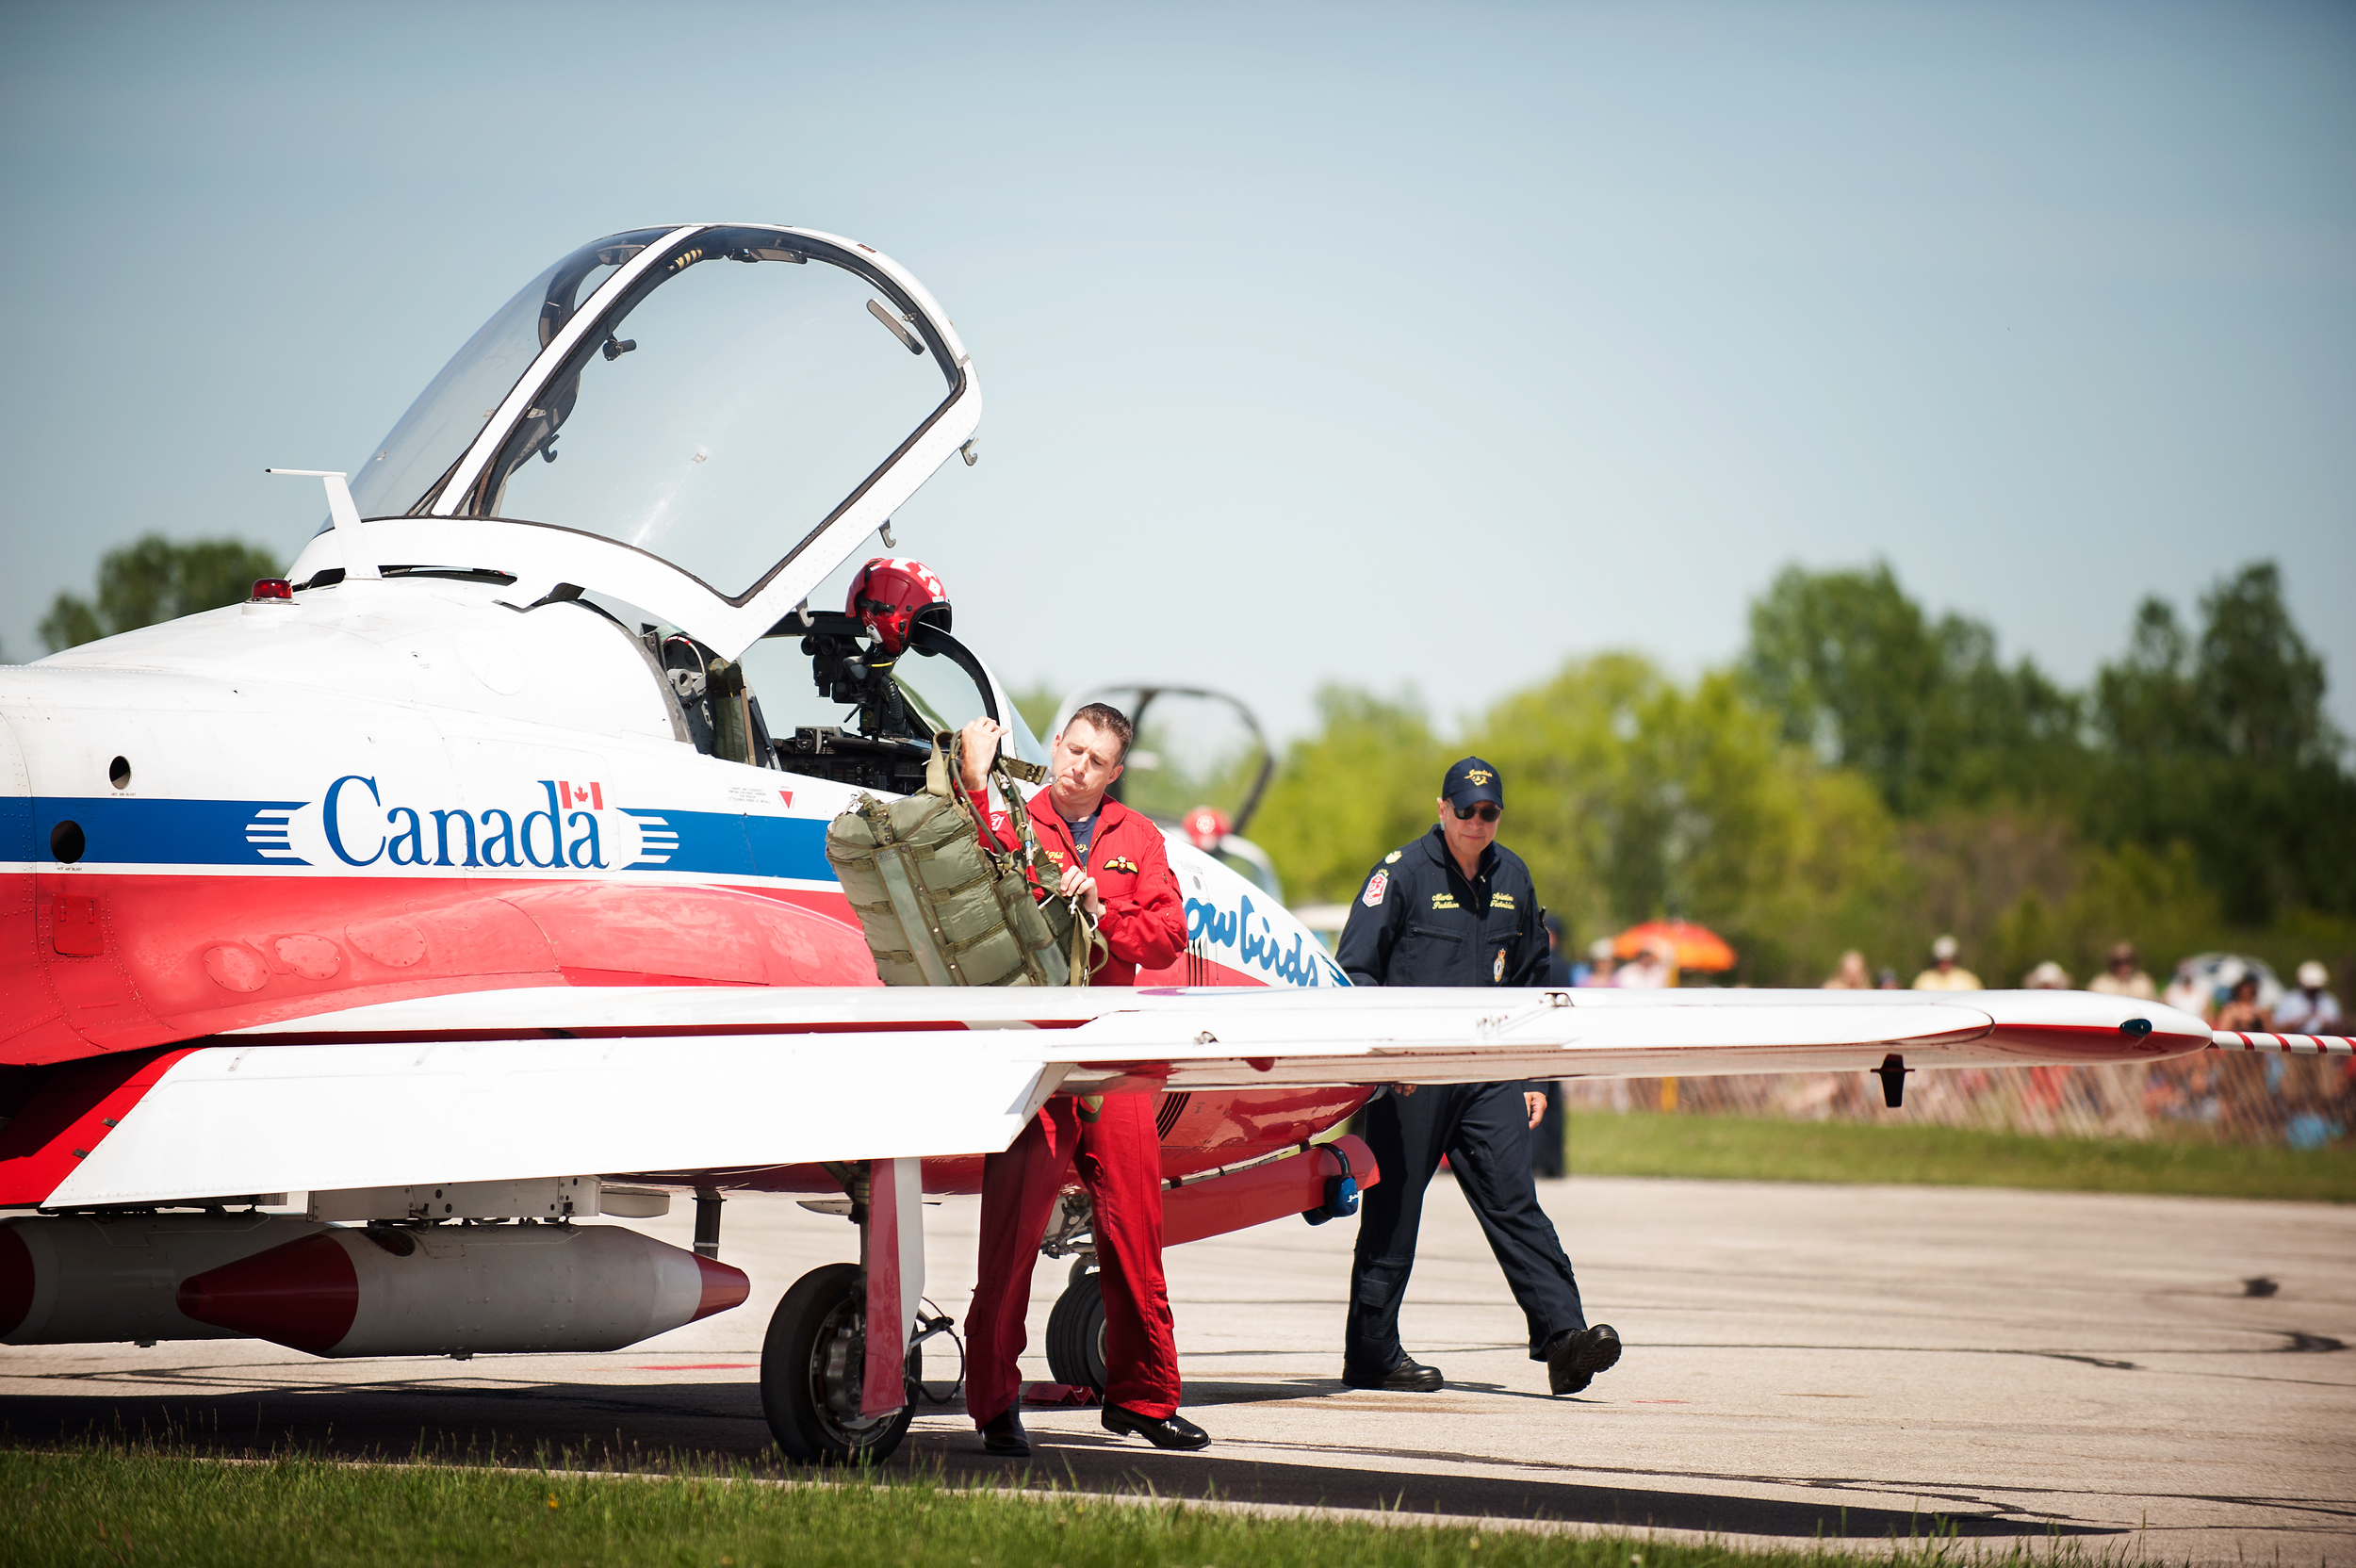 Snowbirds Pilot puts his parachute on after giving it a check over